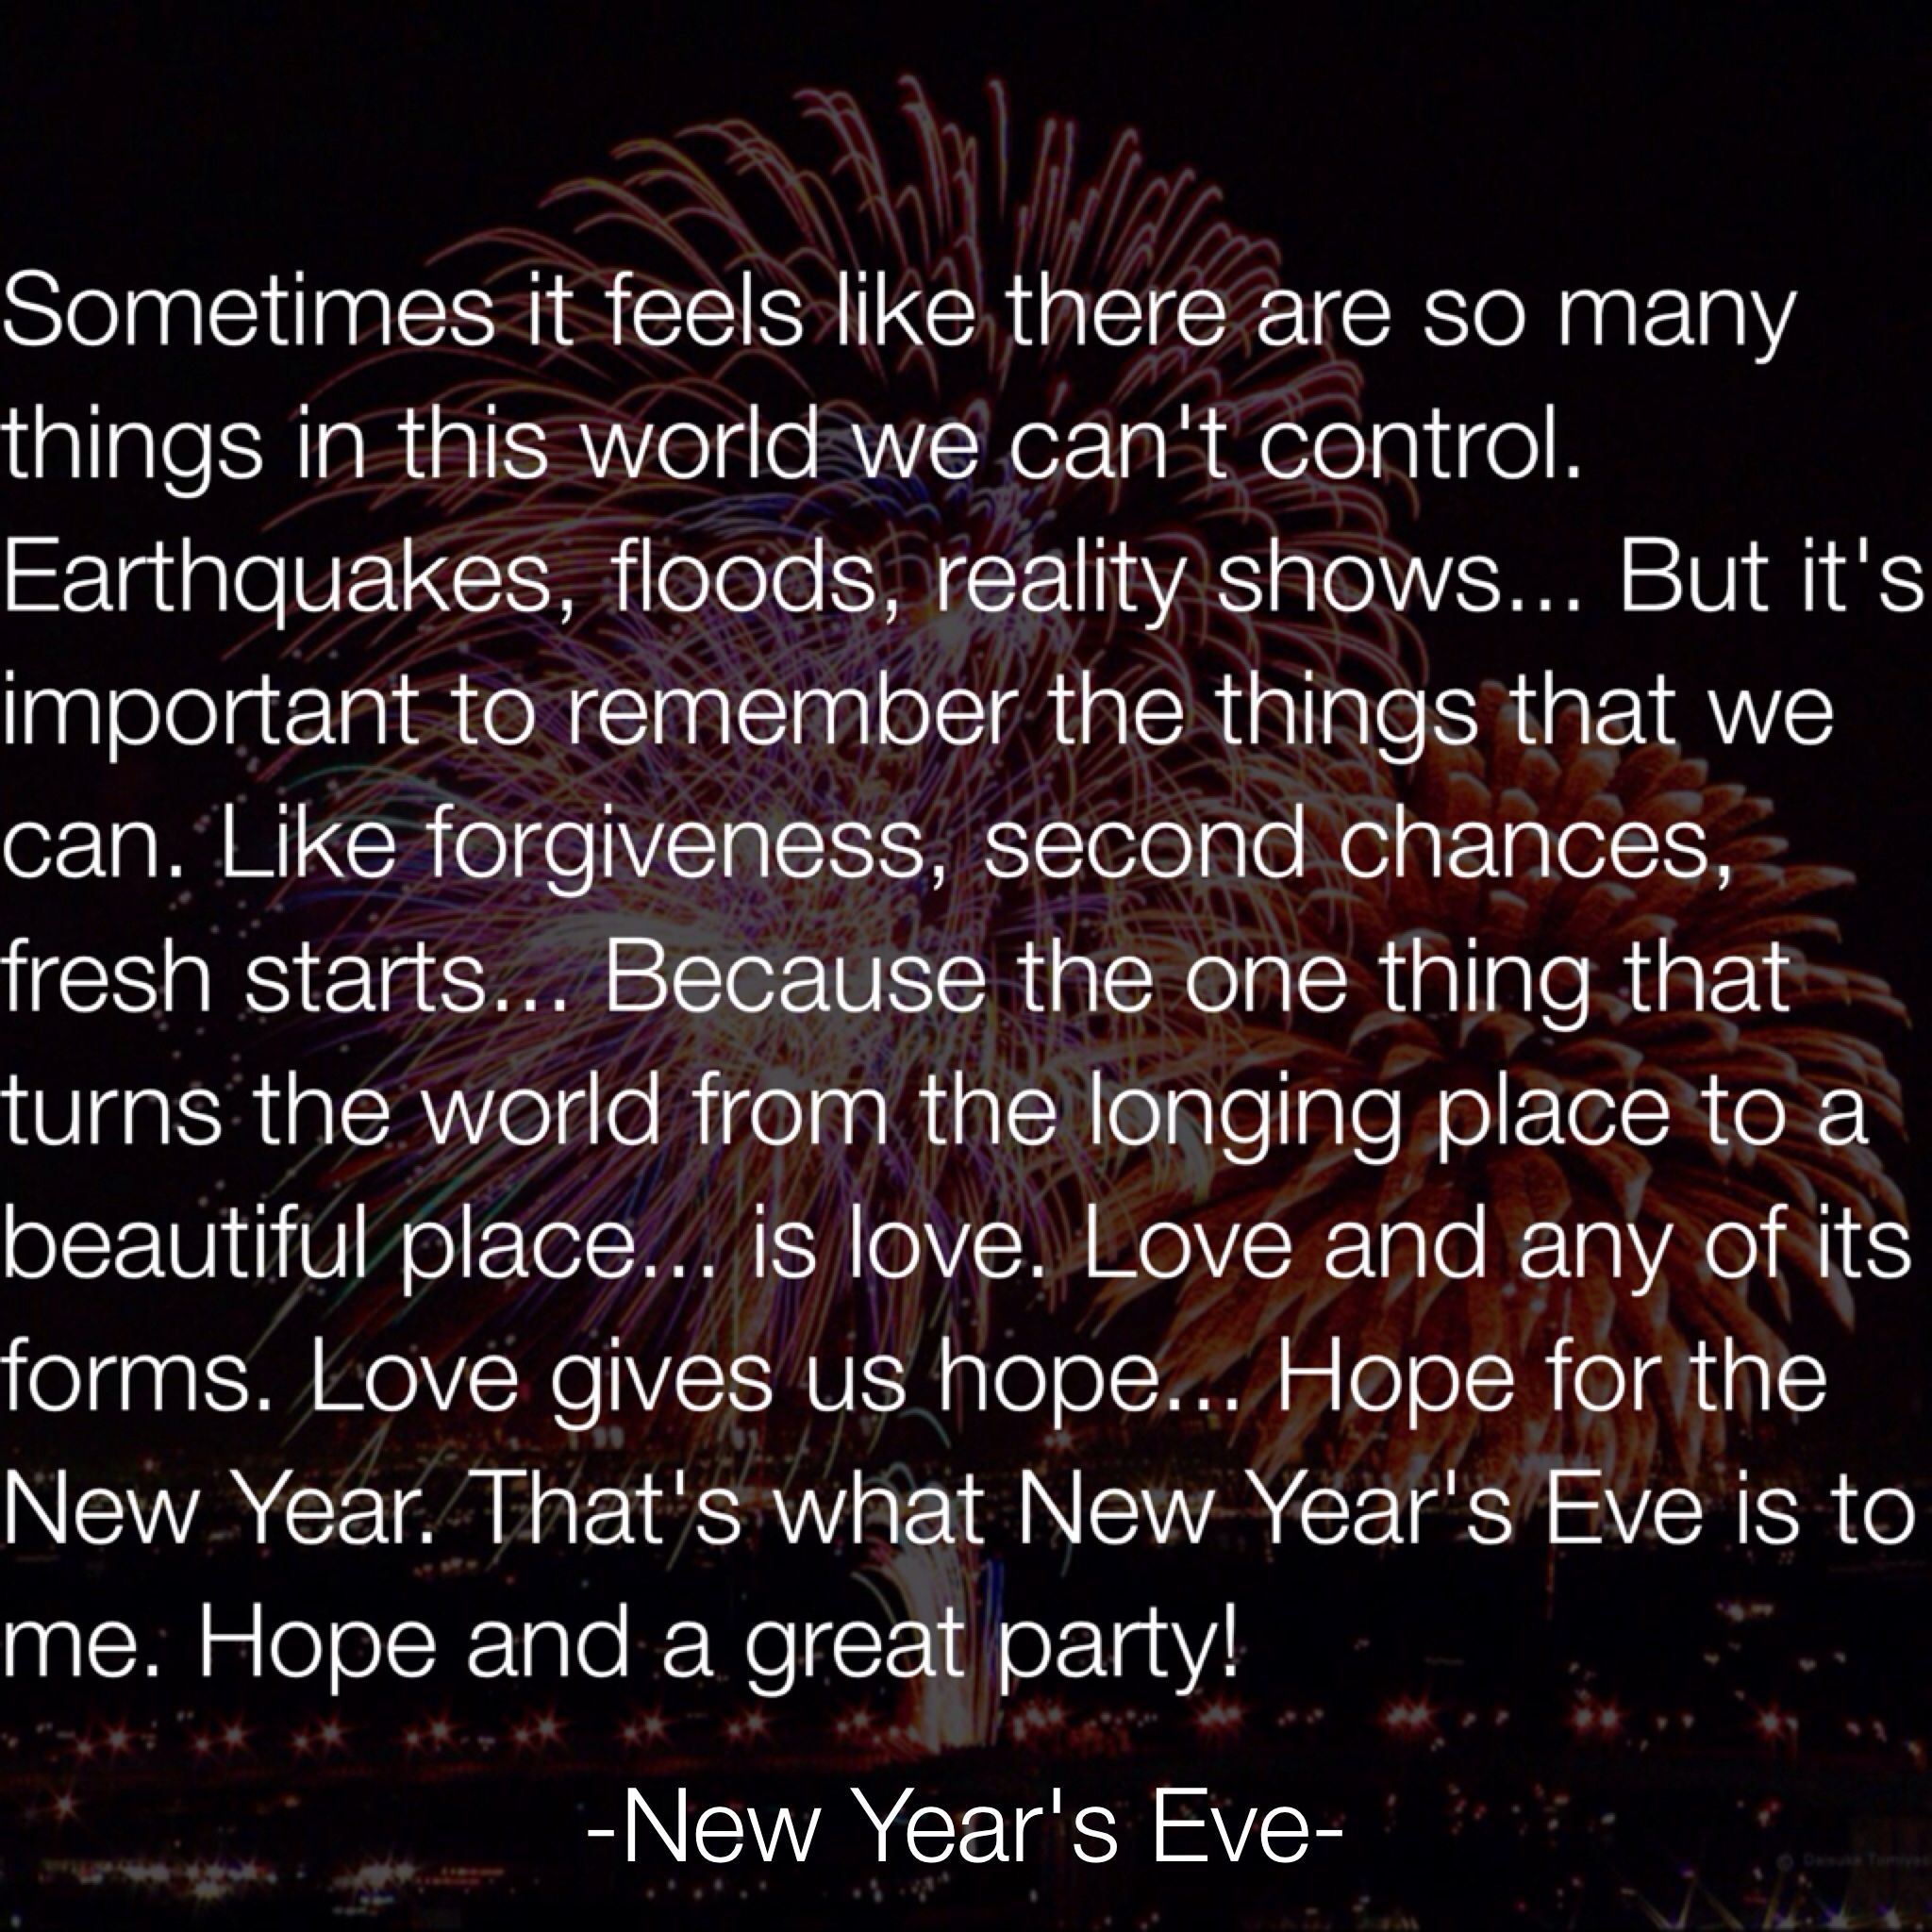 new years eve movie quote